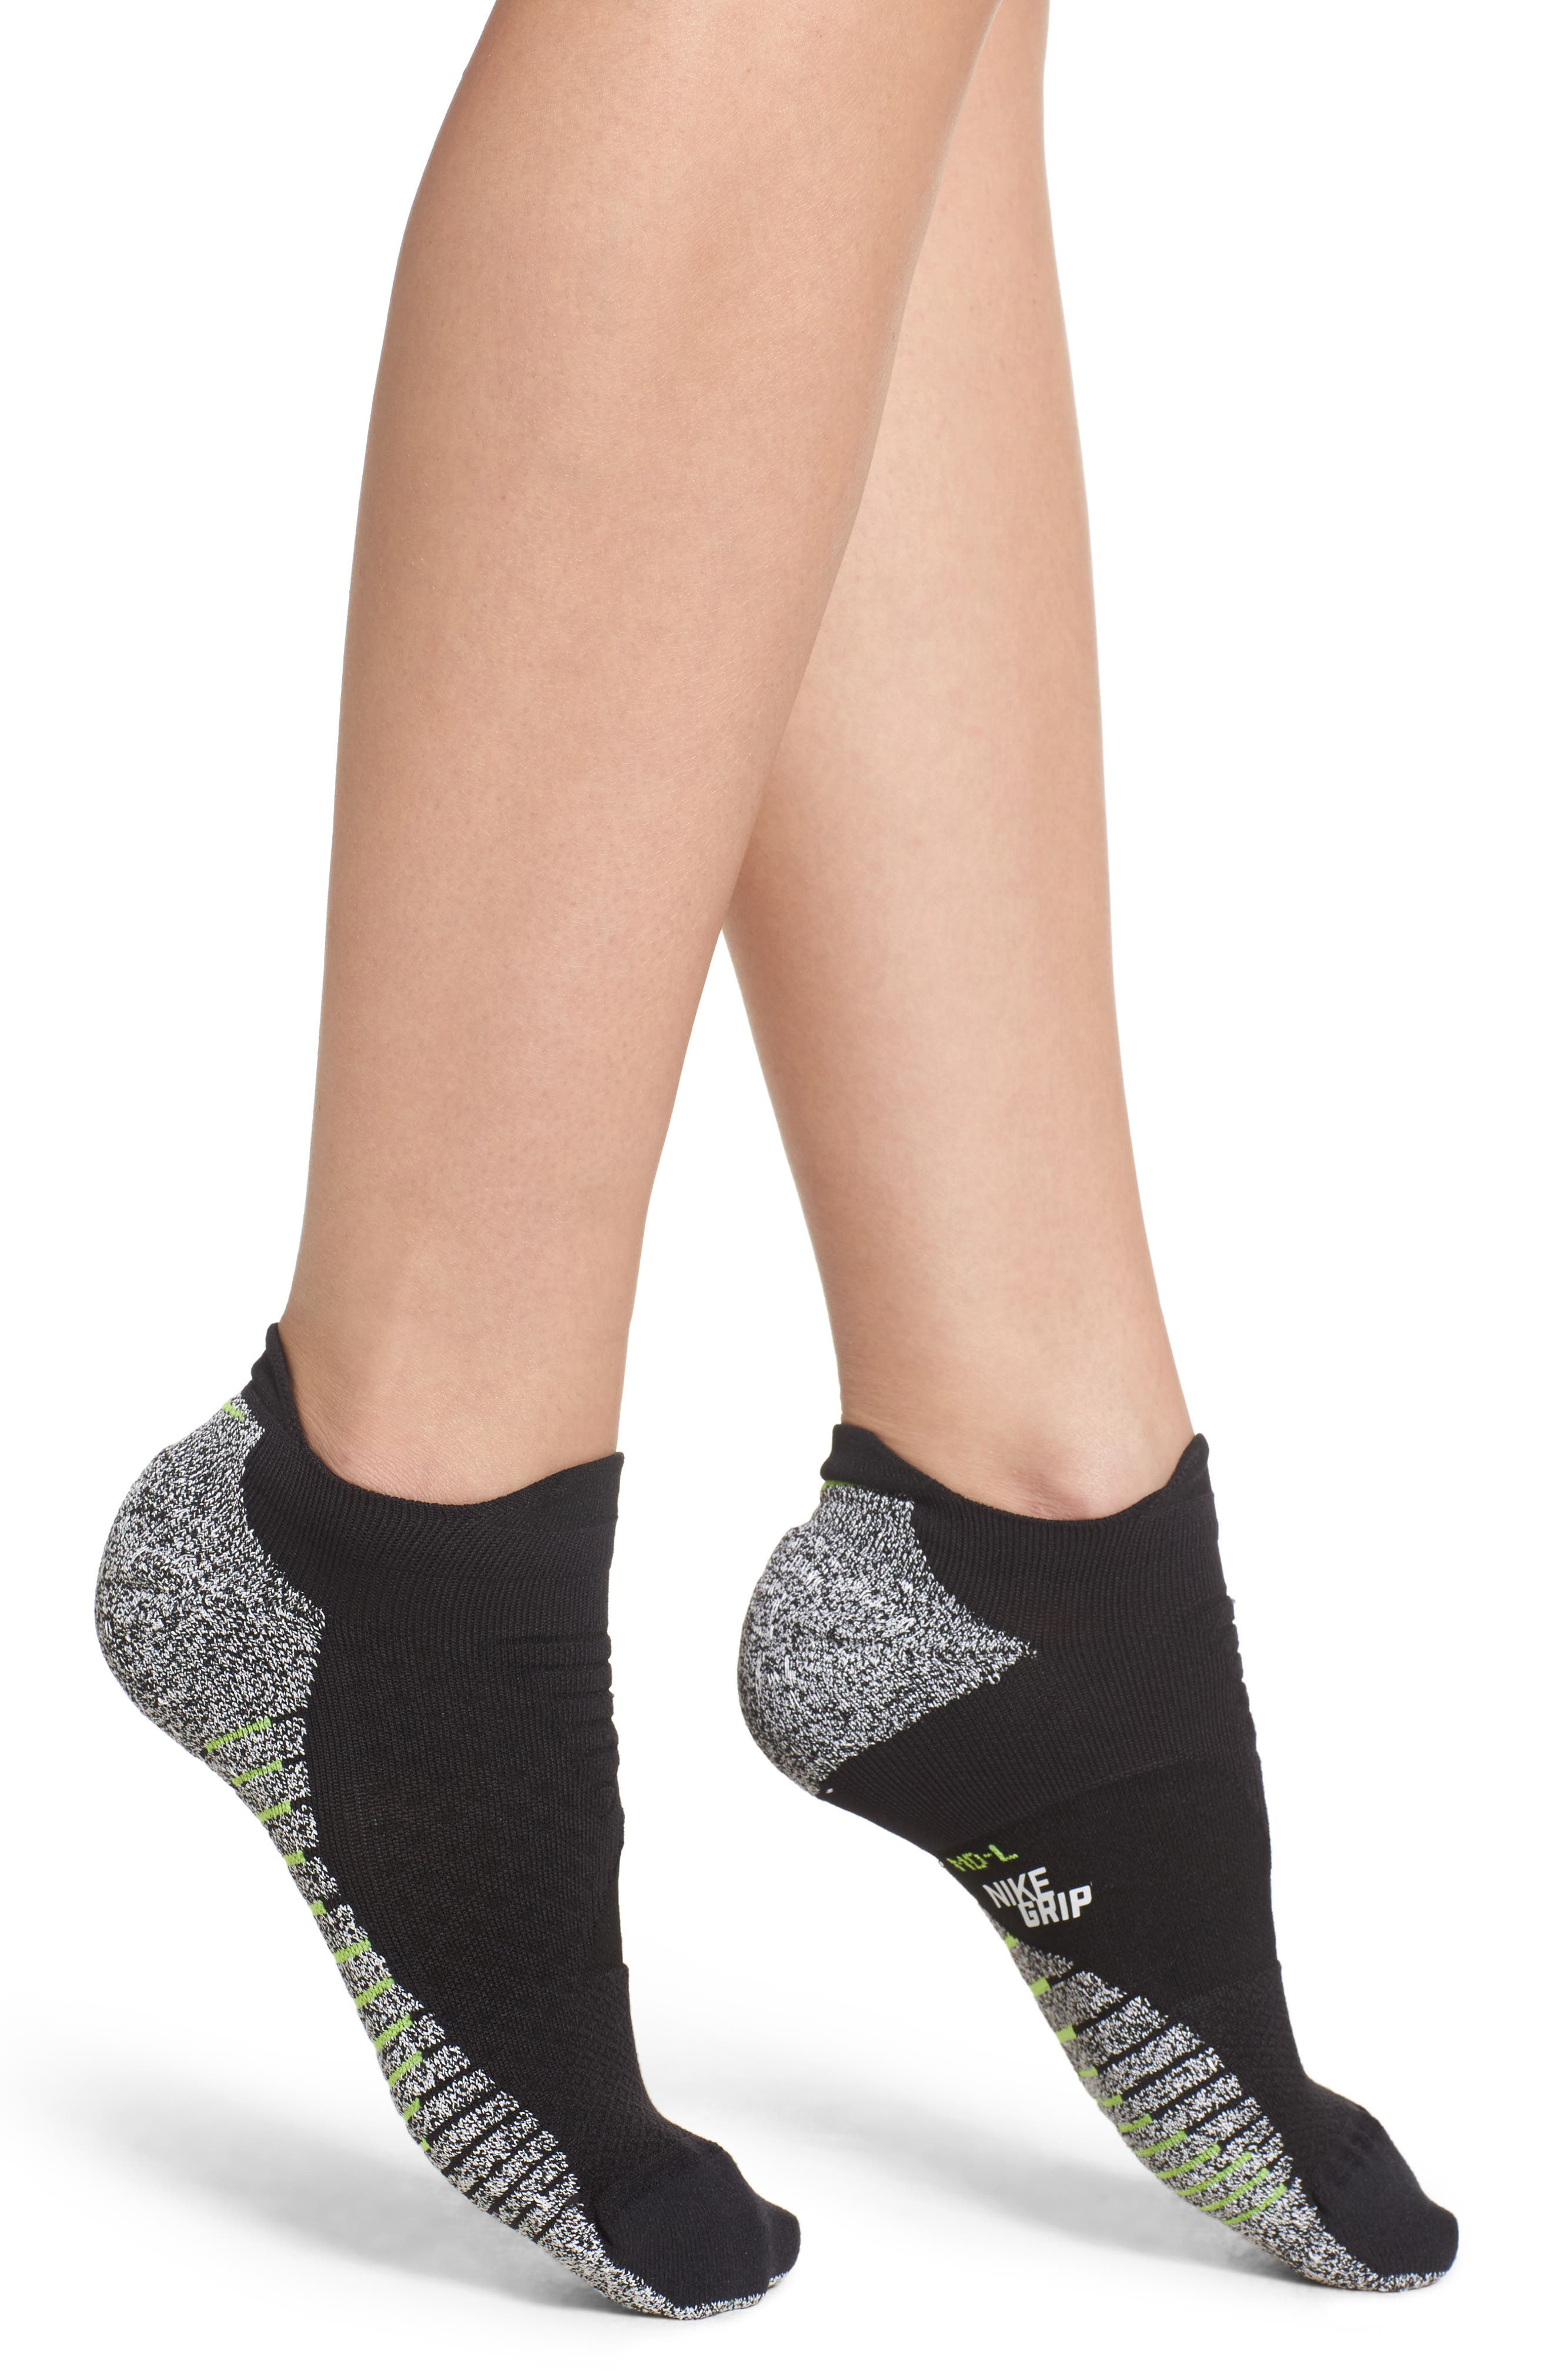 NikeGrip Low Cut Socks,                             Main thumbnail 1, color,